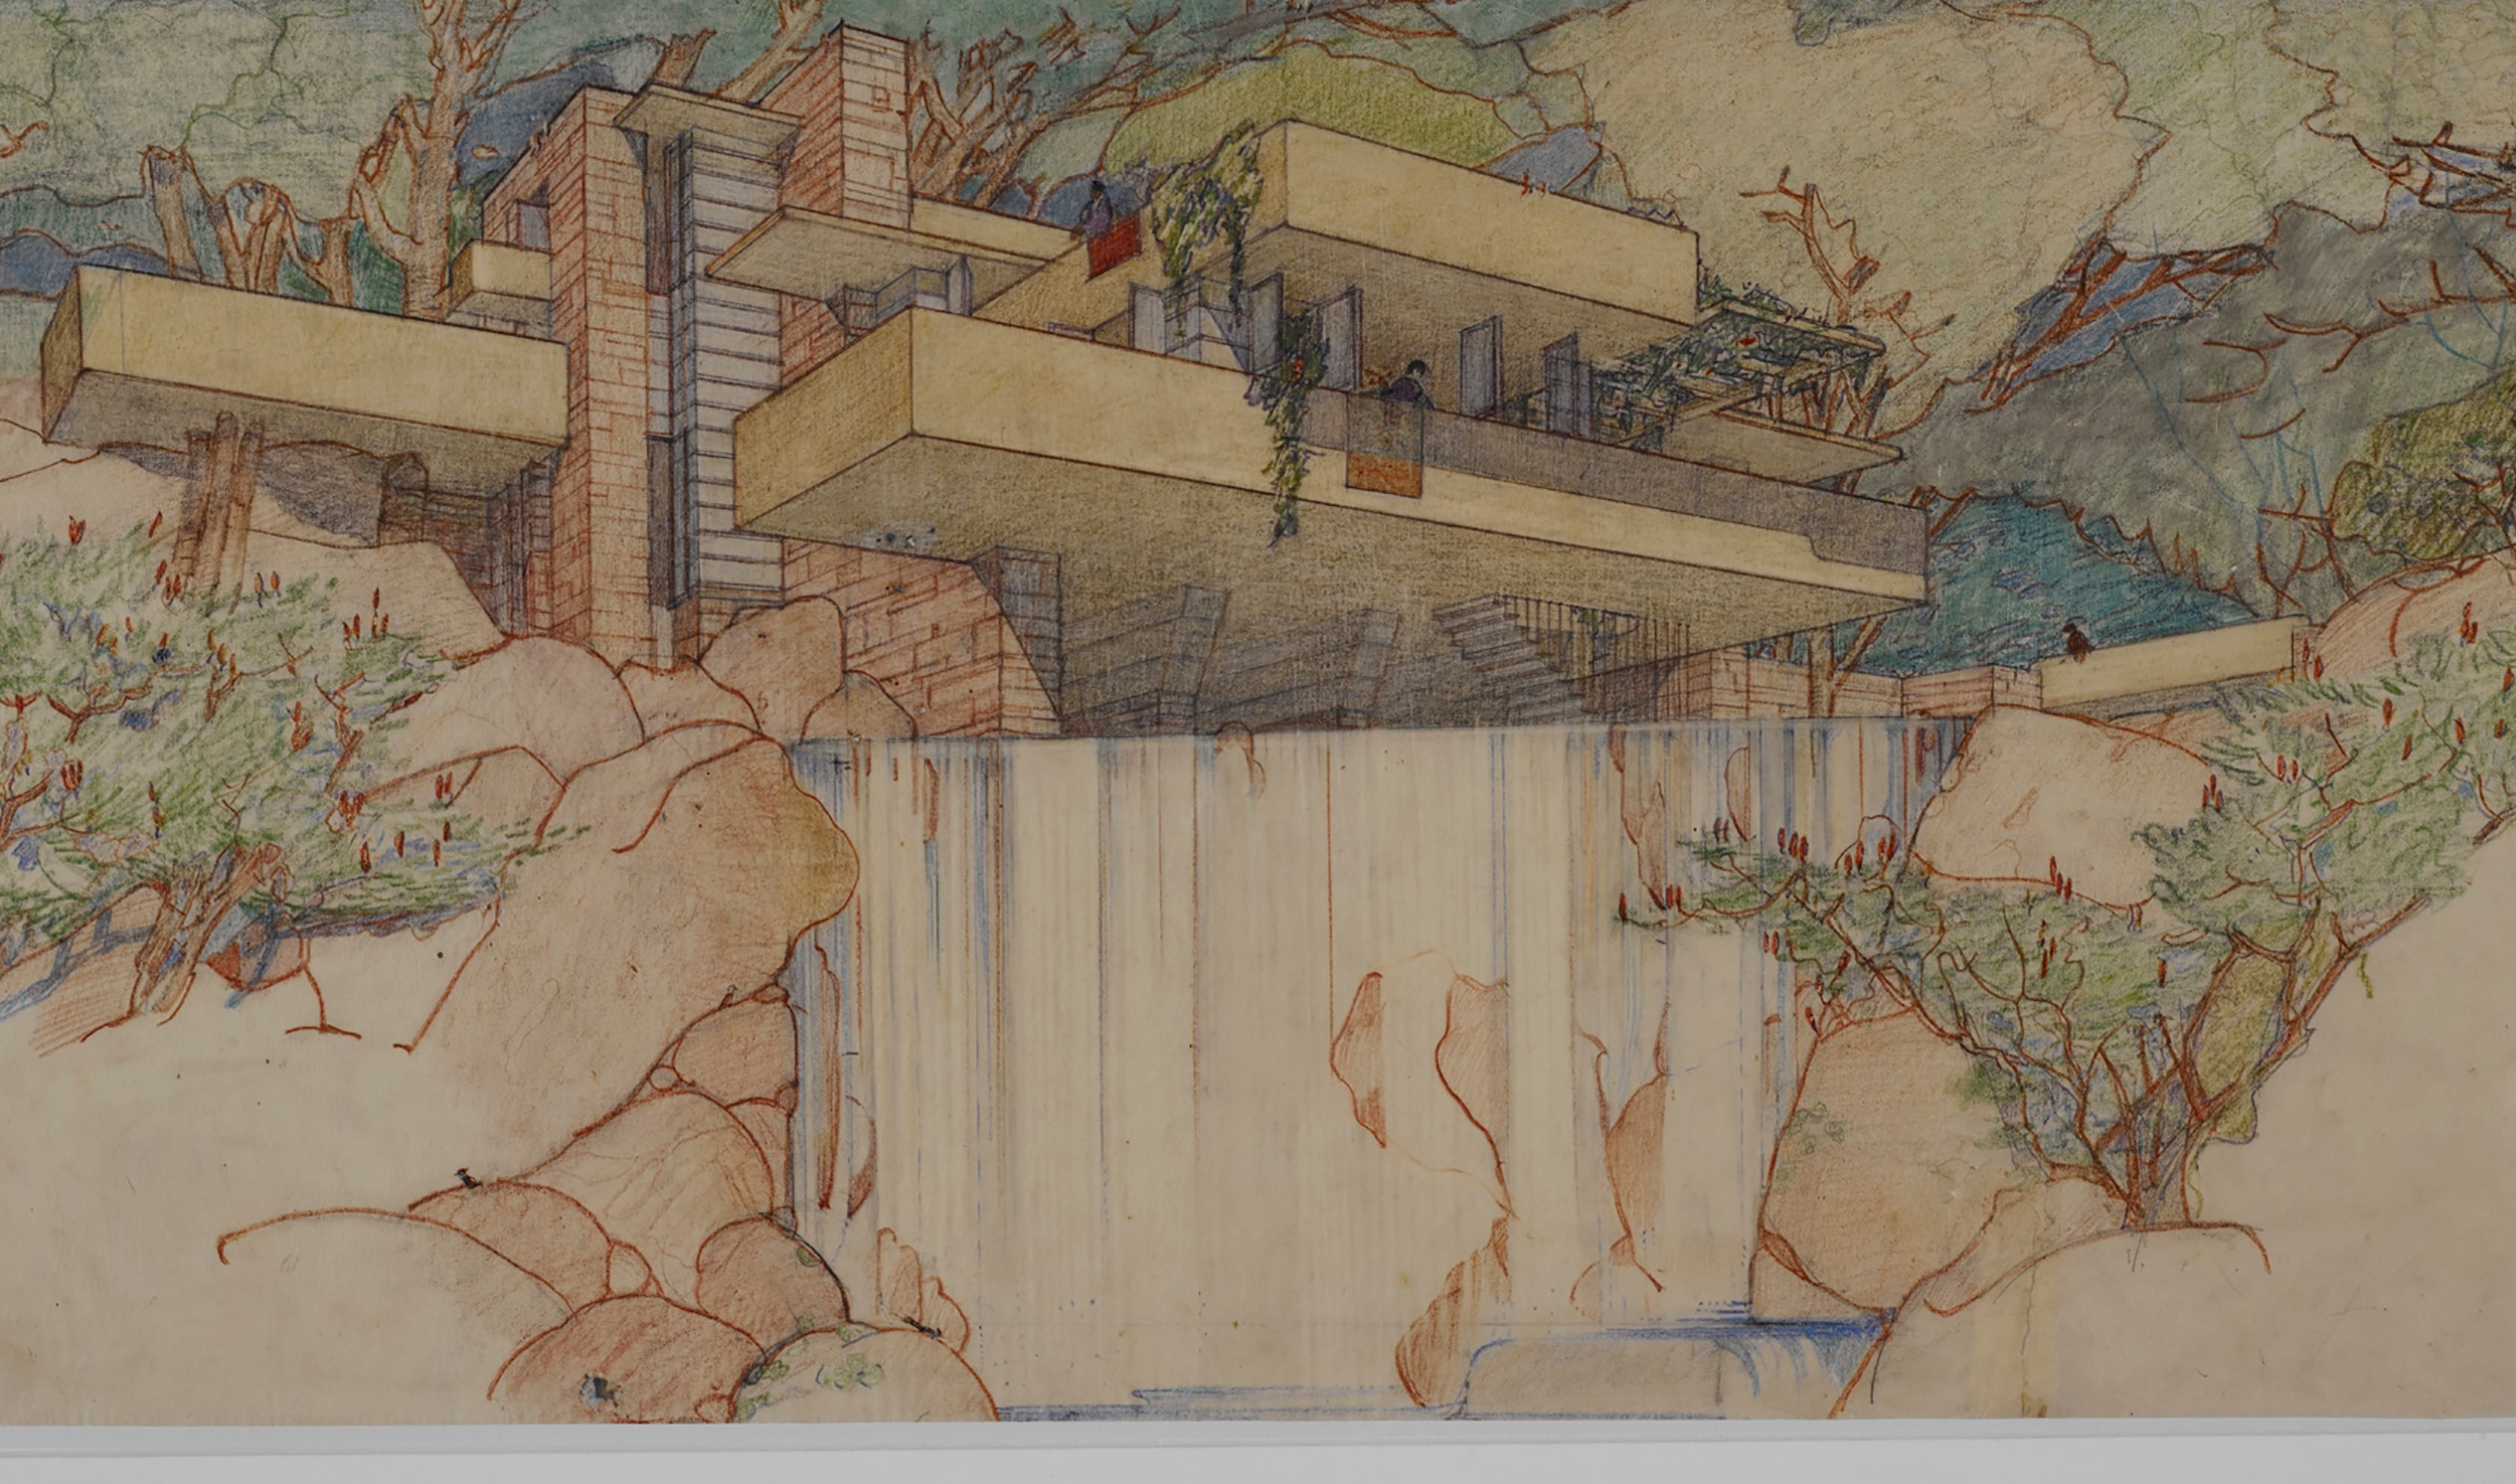 Frank Lloyd Wright (American, 1867–1959). Fallingwater (Kaufmann House), Mill Run, Pennsylvania. 1934–37.